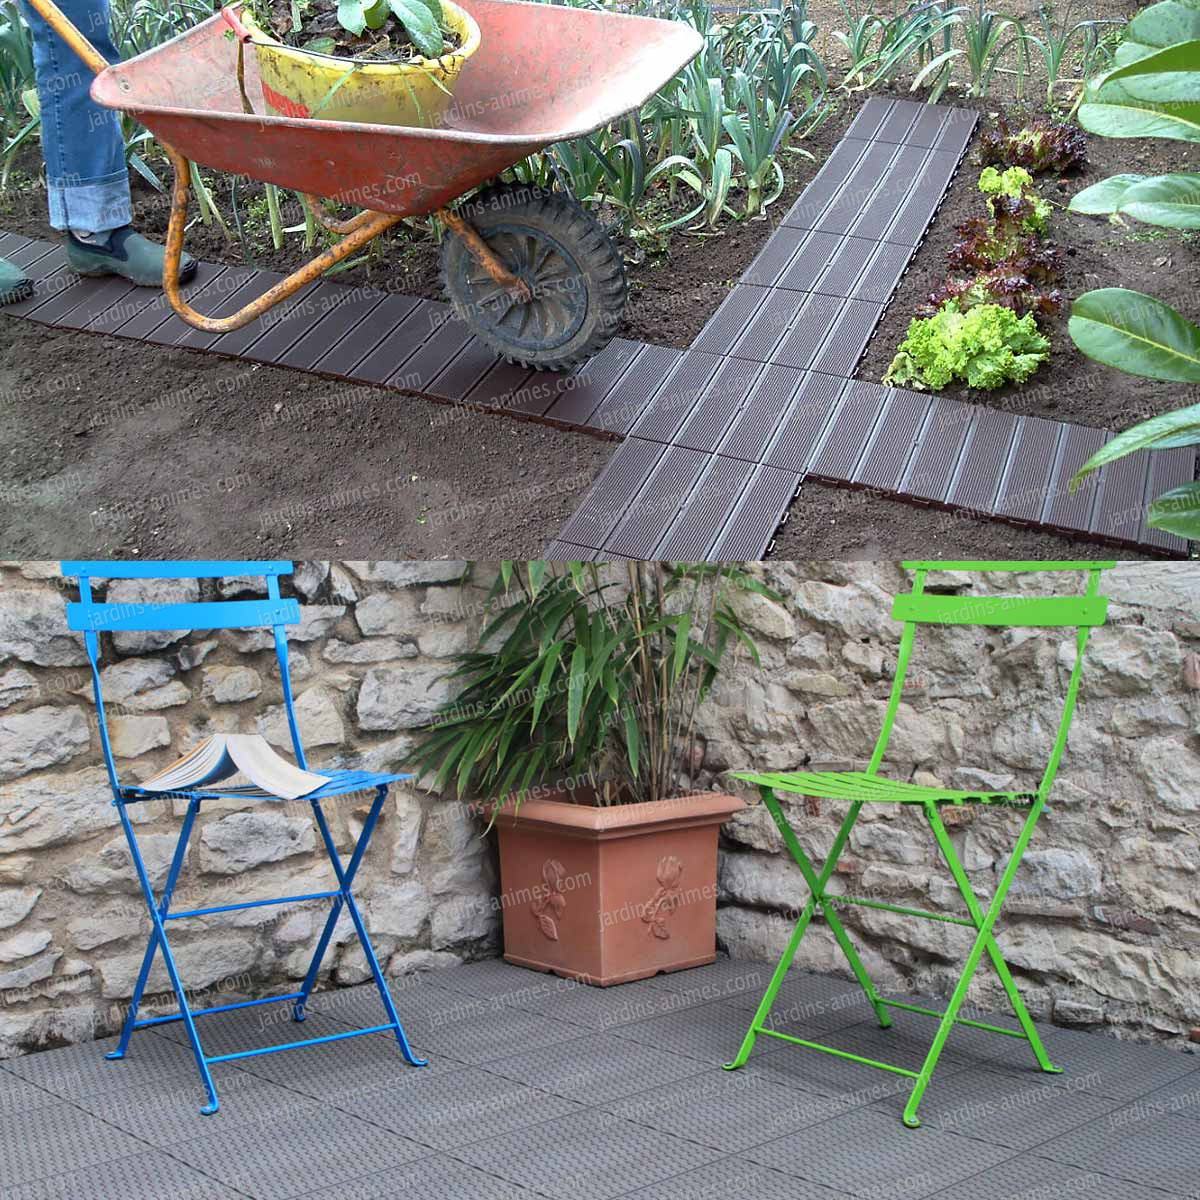 Dalle de jardin clipsable en plastique all e chemin gravier for Maison en plastique de jardin